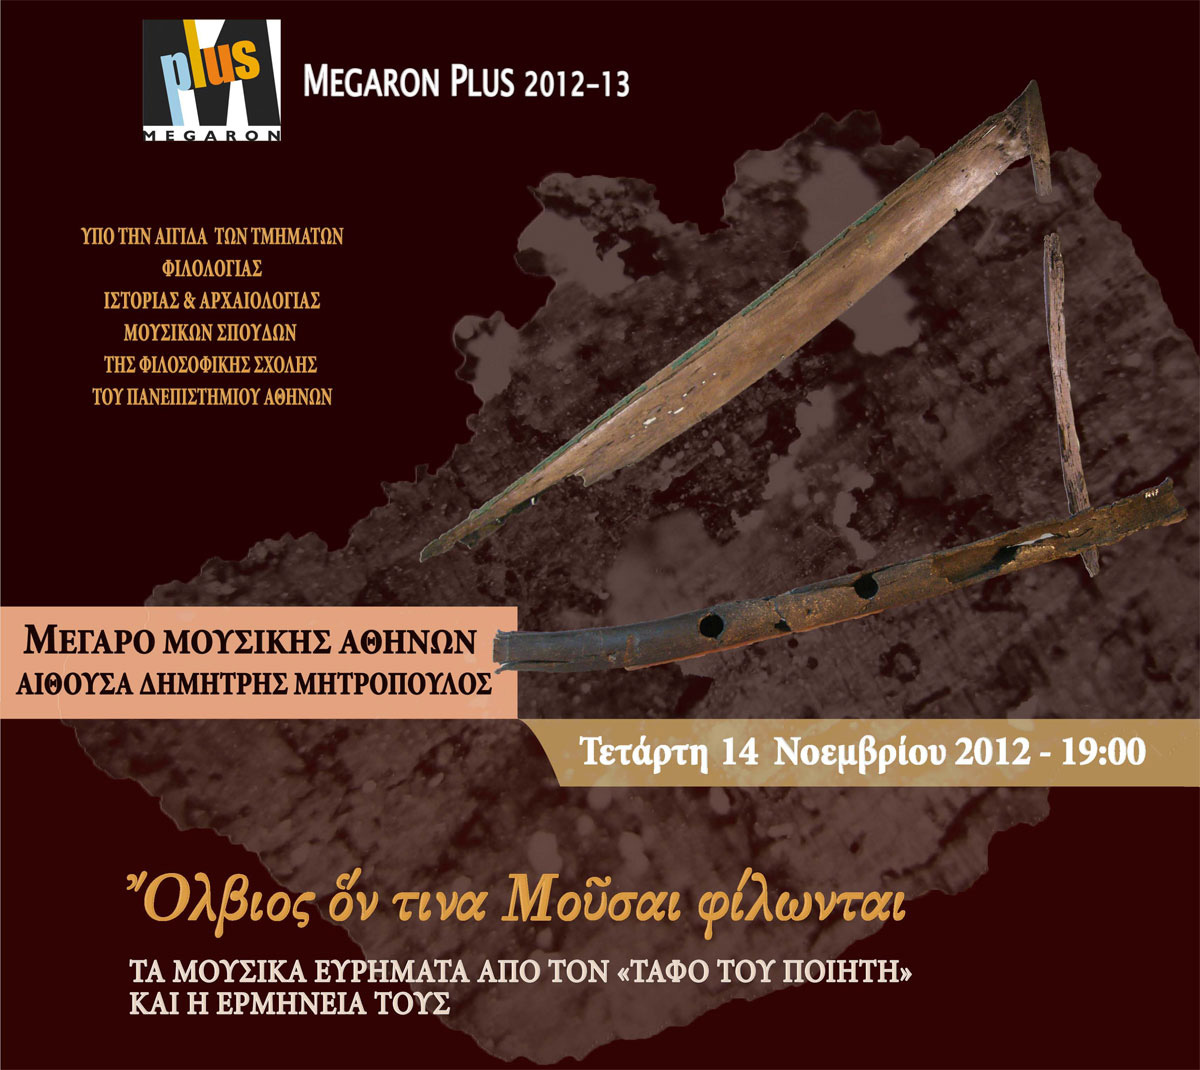 The event's poster.